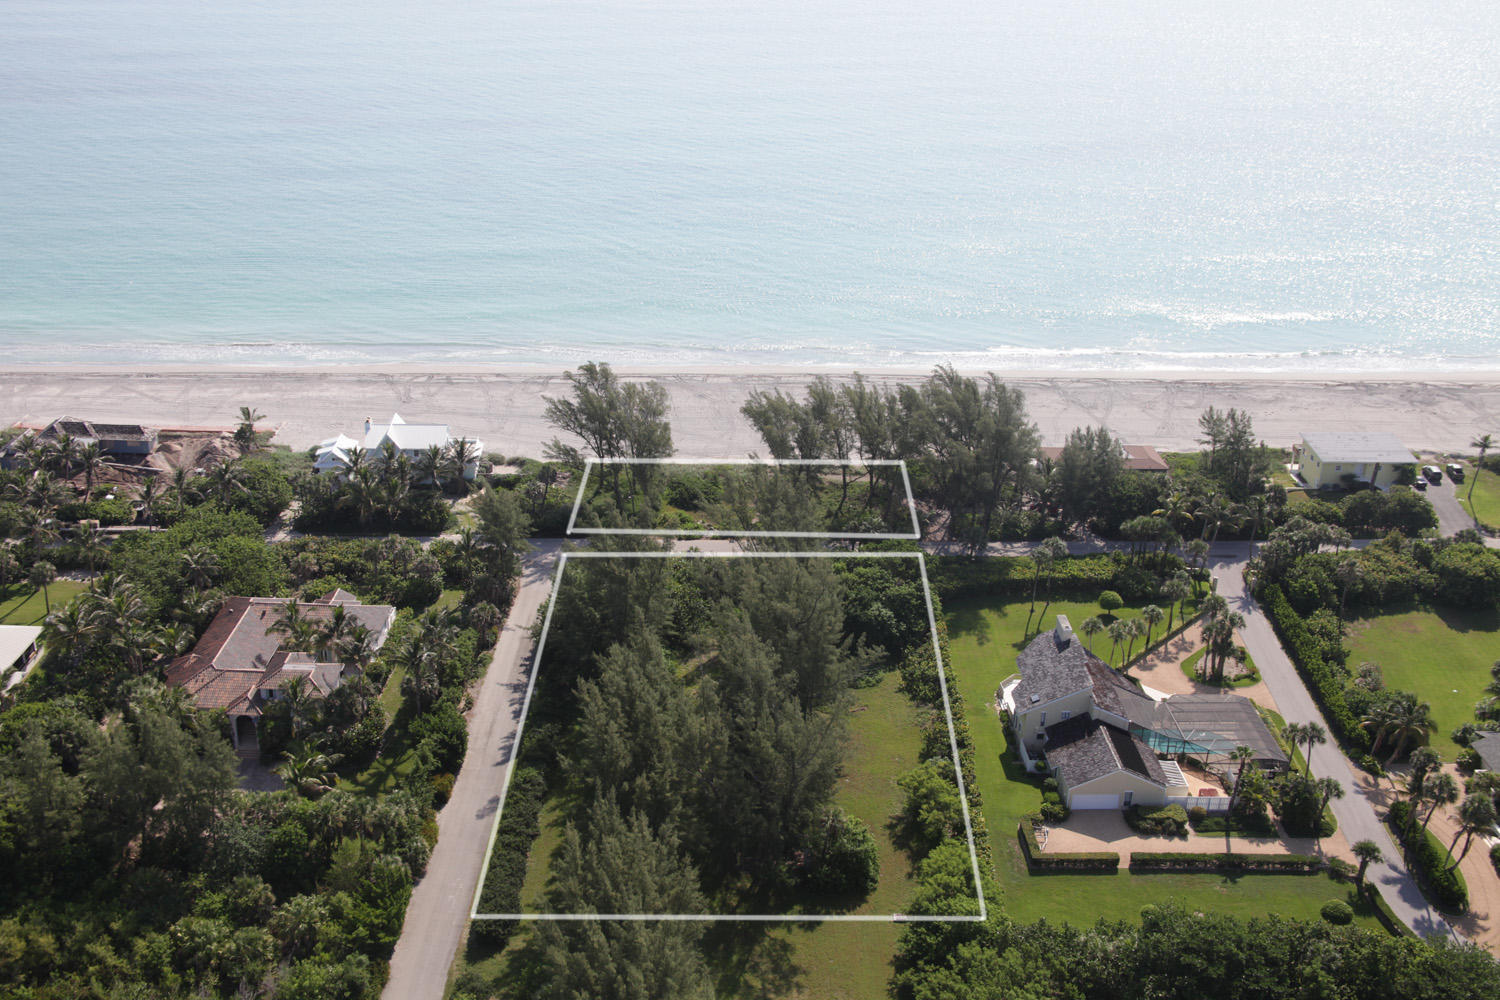 LOTS 1 & 1A NORTH BEACH ESTATES (PB 14 PG 82)